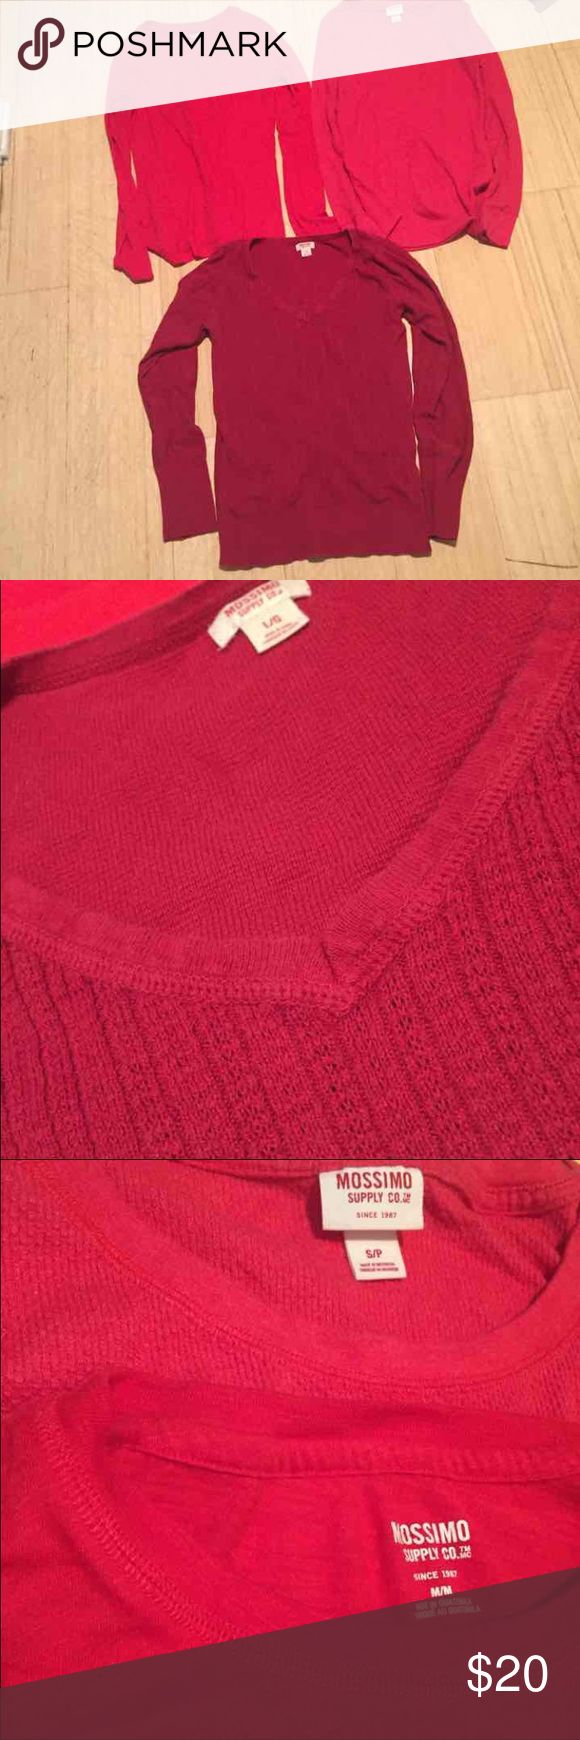 3 red long sleeve tops mossimo target Item description: Lot of 3 red long sleeve tops. One thermal in good condition, one regular long sleeve in great condition, one red v neck sweater in ok condition (pretty nice still, just a little more worn than other 2) sizes S, M and L but they all fit me and I'm a S-M Last photo shows the red size s thermal Mossimo Supply Co Tops Tees - Long Sleeve